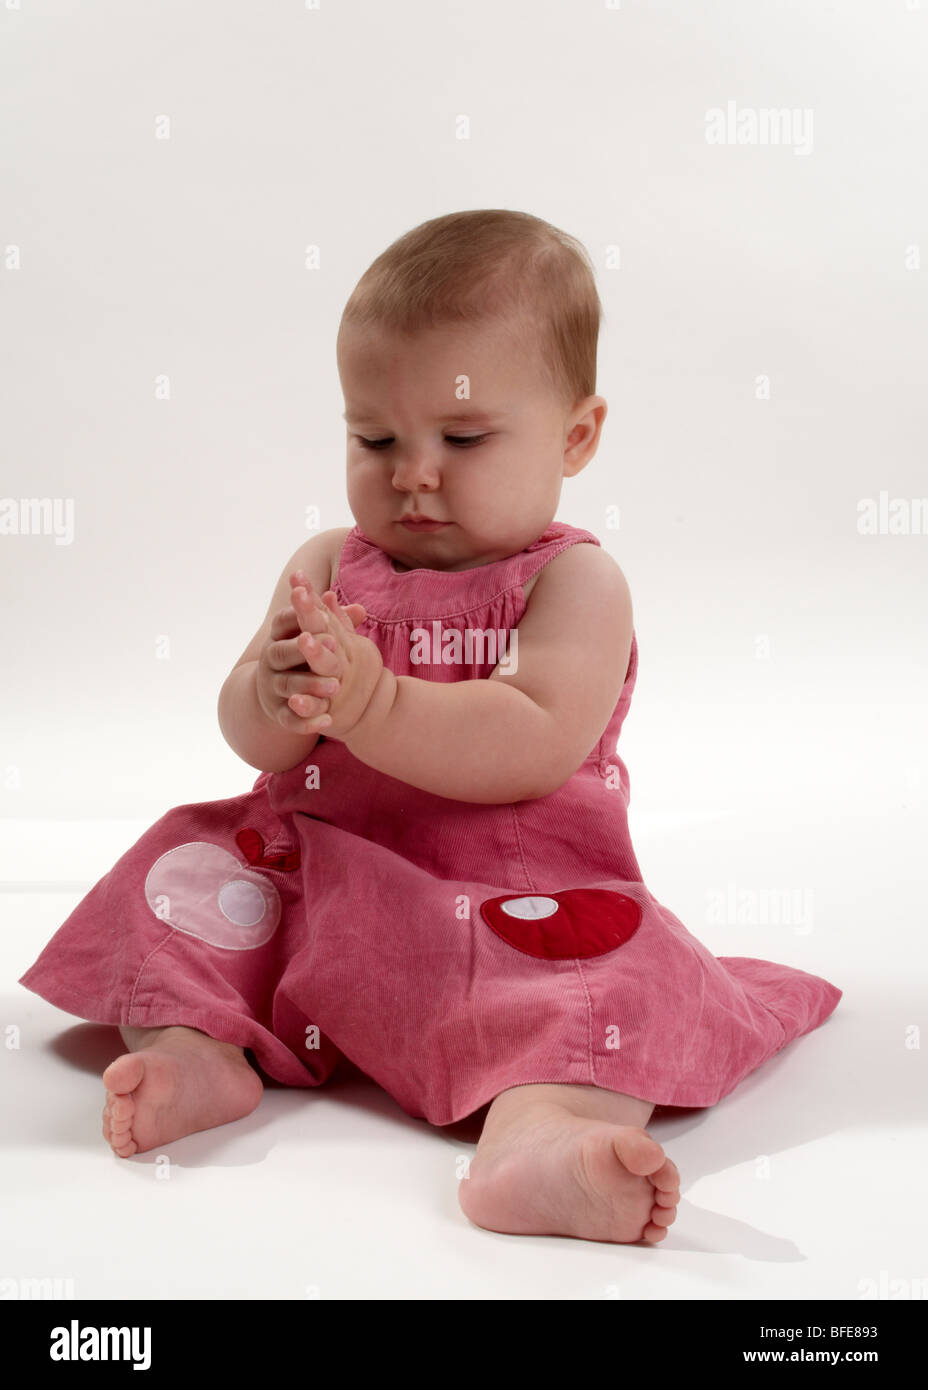 1 year old baby girl in pink dress on white background stock photo